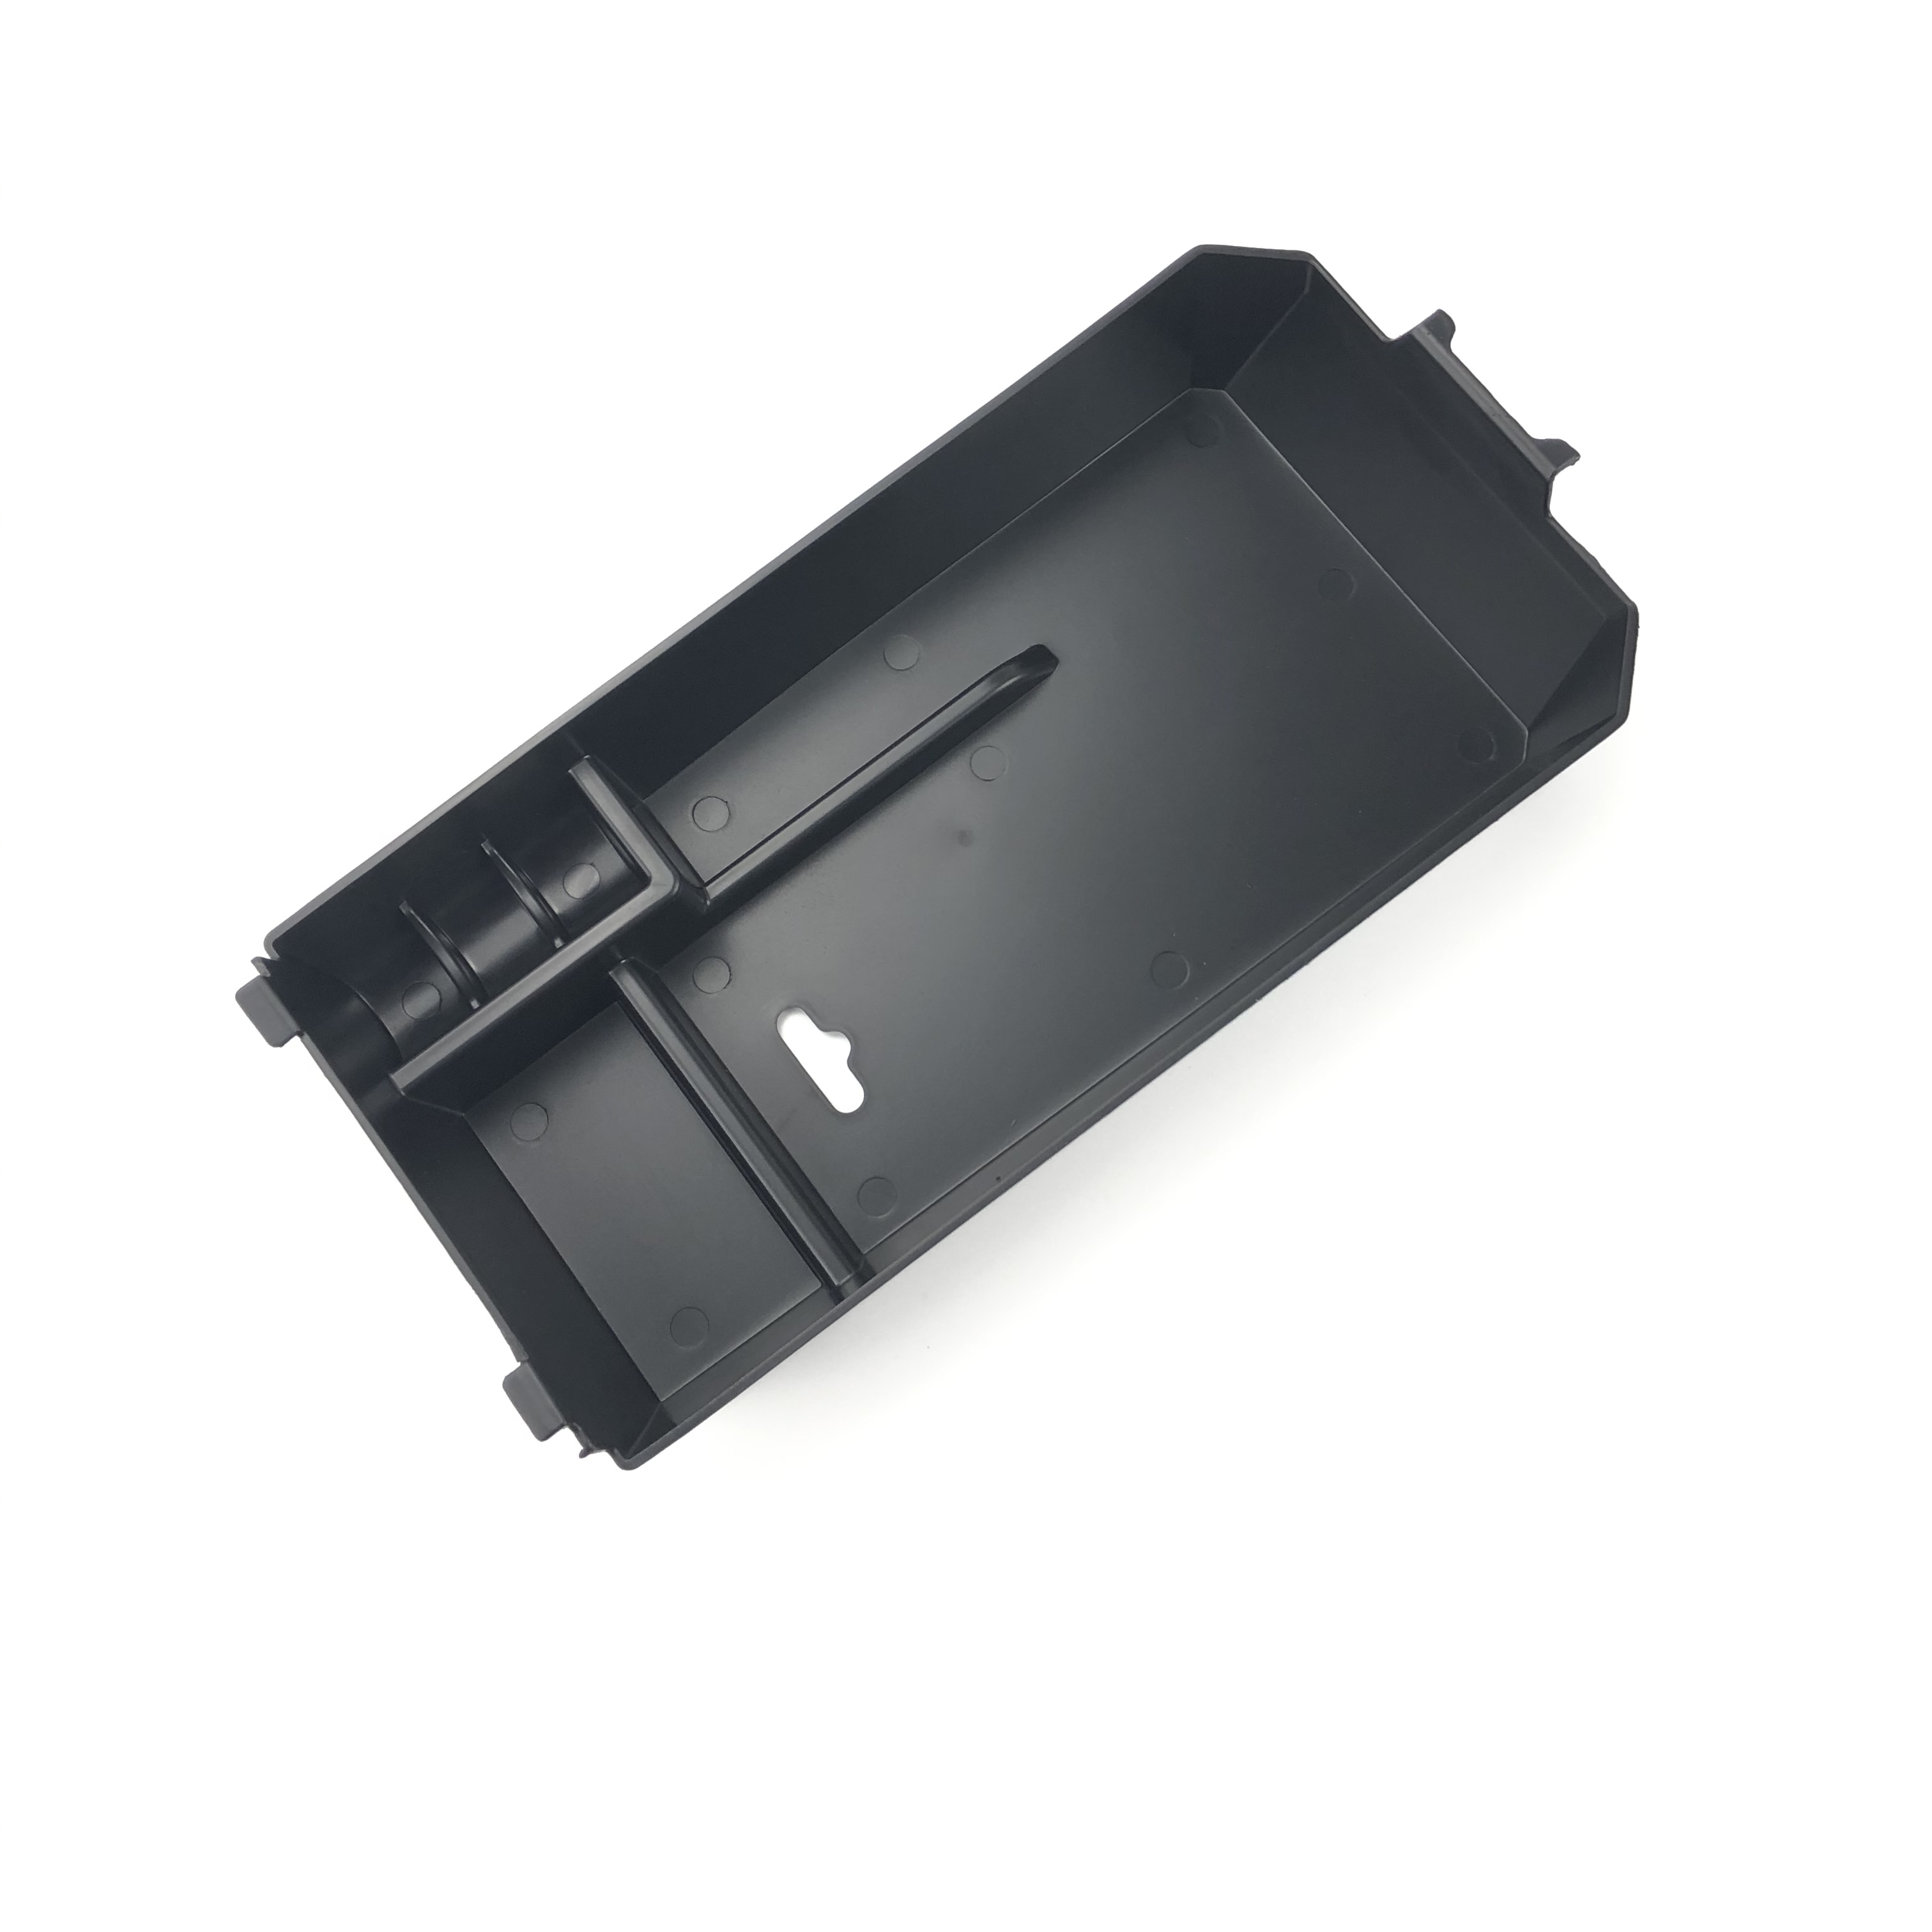 Armrest Box Storage for <font><b>Mercedes</b></font> Benz W205 X253 Interior Accessories C-Class GLC C200 C220 C250 <font><b>C300</b></font> GLC200 GLC250d <font><b>Coupe</b></font> GLC350 image